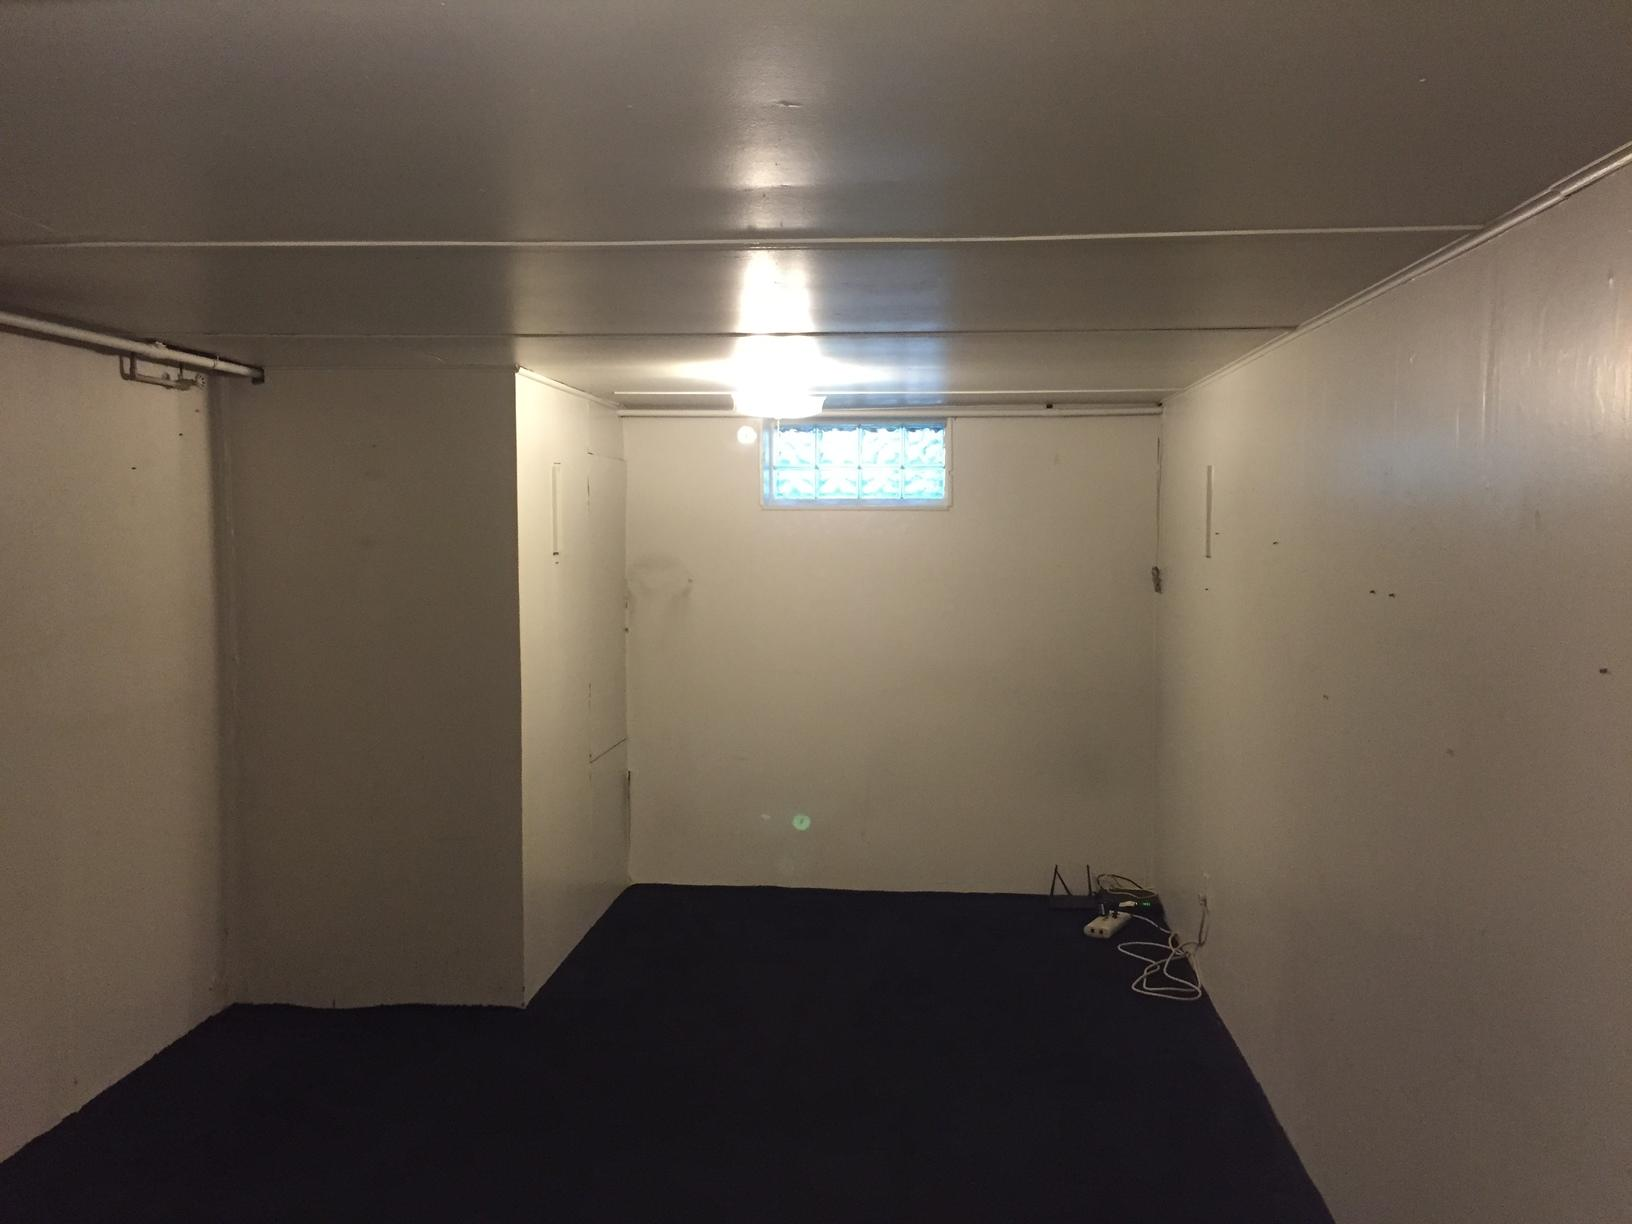 Uninviting Basement Bedroom is Brightened in Albany, NY - Before Photo